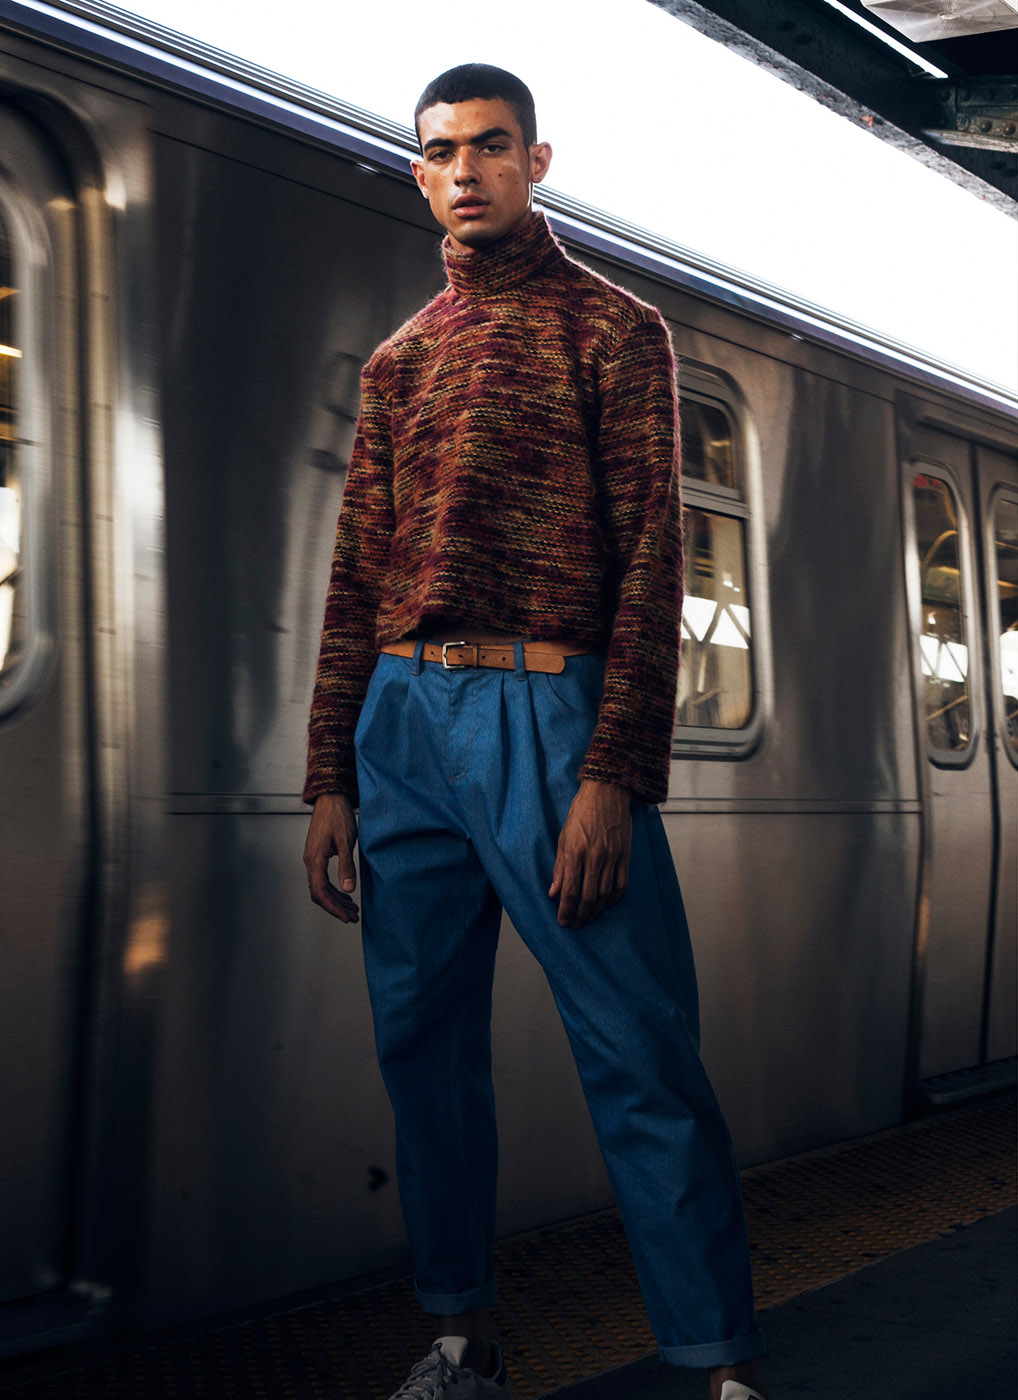 rush-hour-by-patrick-lacsina-for-chasseur-magazine-6